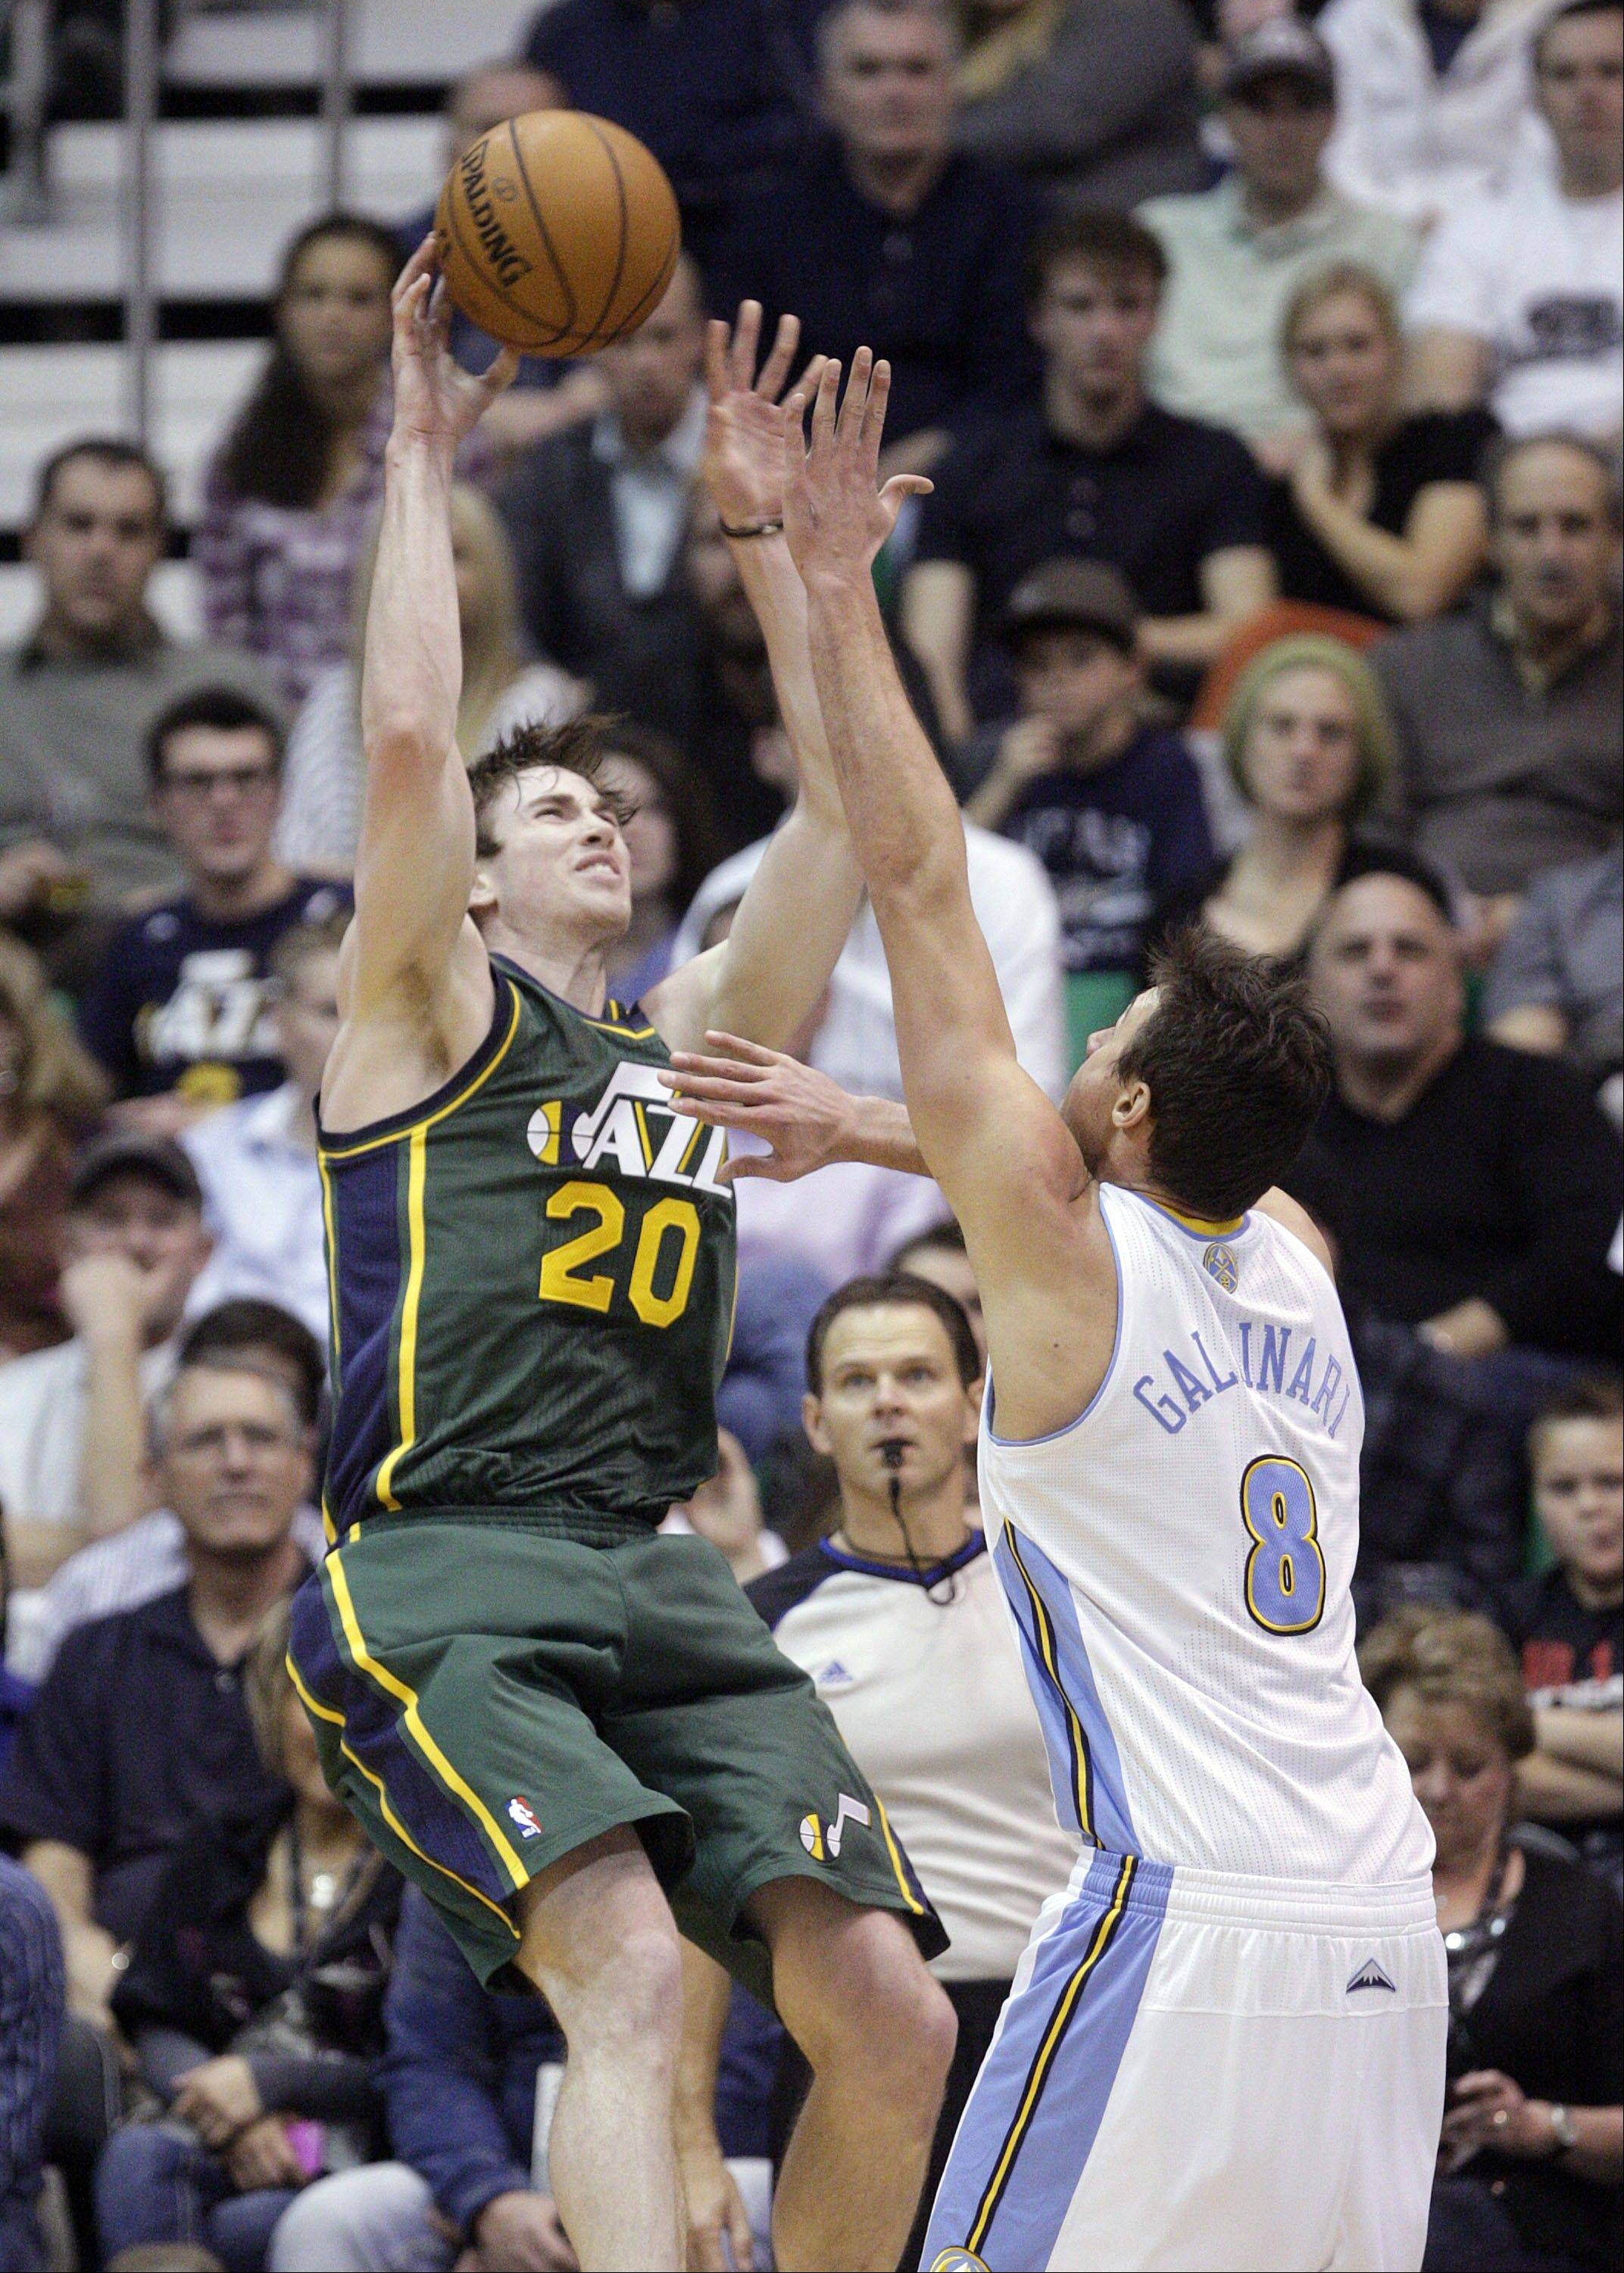 Utah Jazz guard Gordon Hayward (20) shoots as Denver Nuggets forward Danilo Gallinari (8) defends in the second quarter during an NBA basketball game Monday, Nov. 26, 2012, in Salt Lake City.